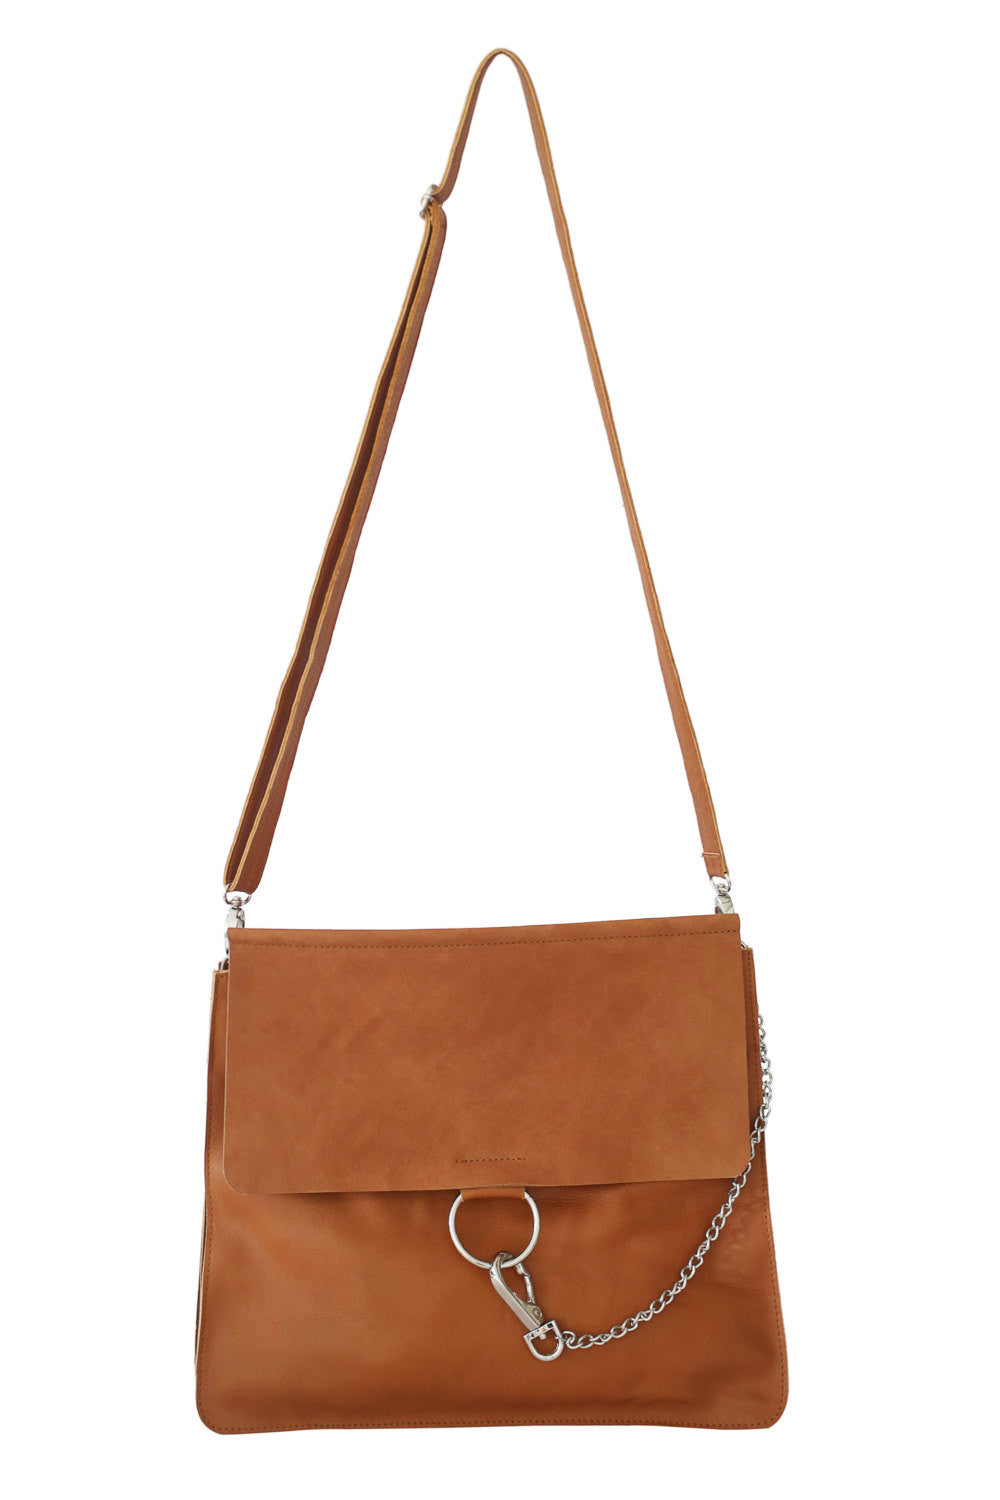 Bags and Purses; Crossbody Bag; Shoulder Bag; Tan Shoulder Bag; Ring detail handbag; Chloe Faye Dupe crossbody bag